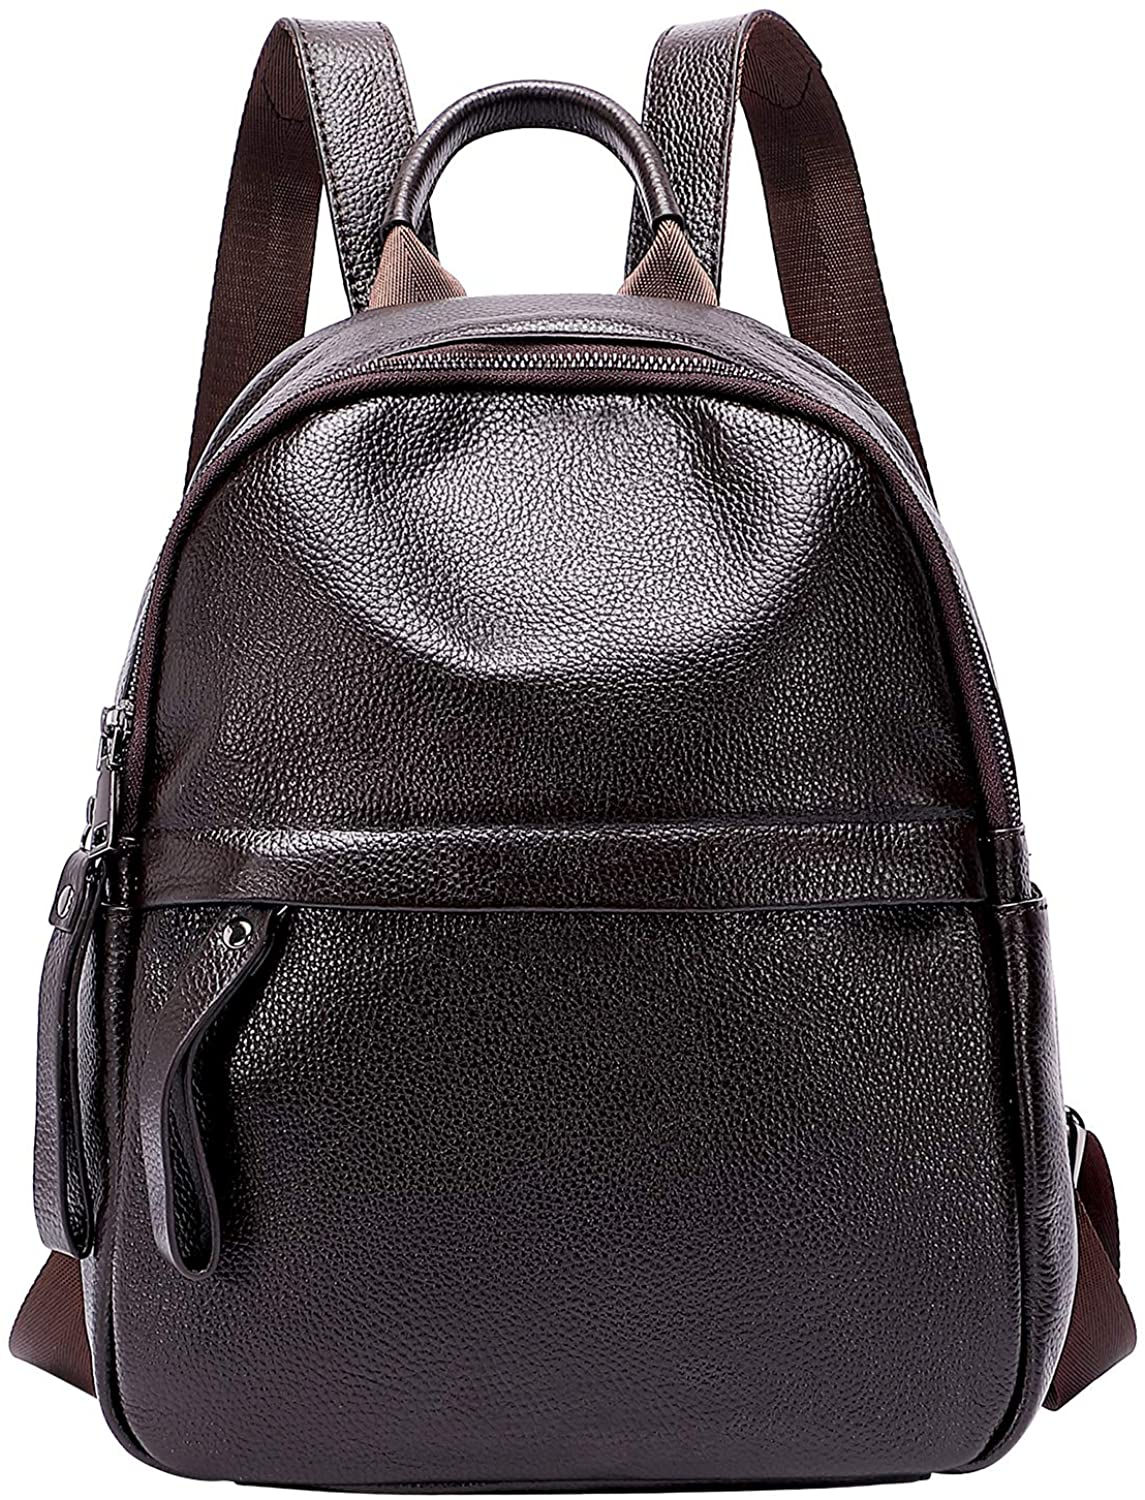 ALTOSY Soft Genuine Leather Backpack Purse for Women Fashion Casual Daypack Bag